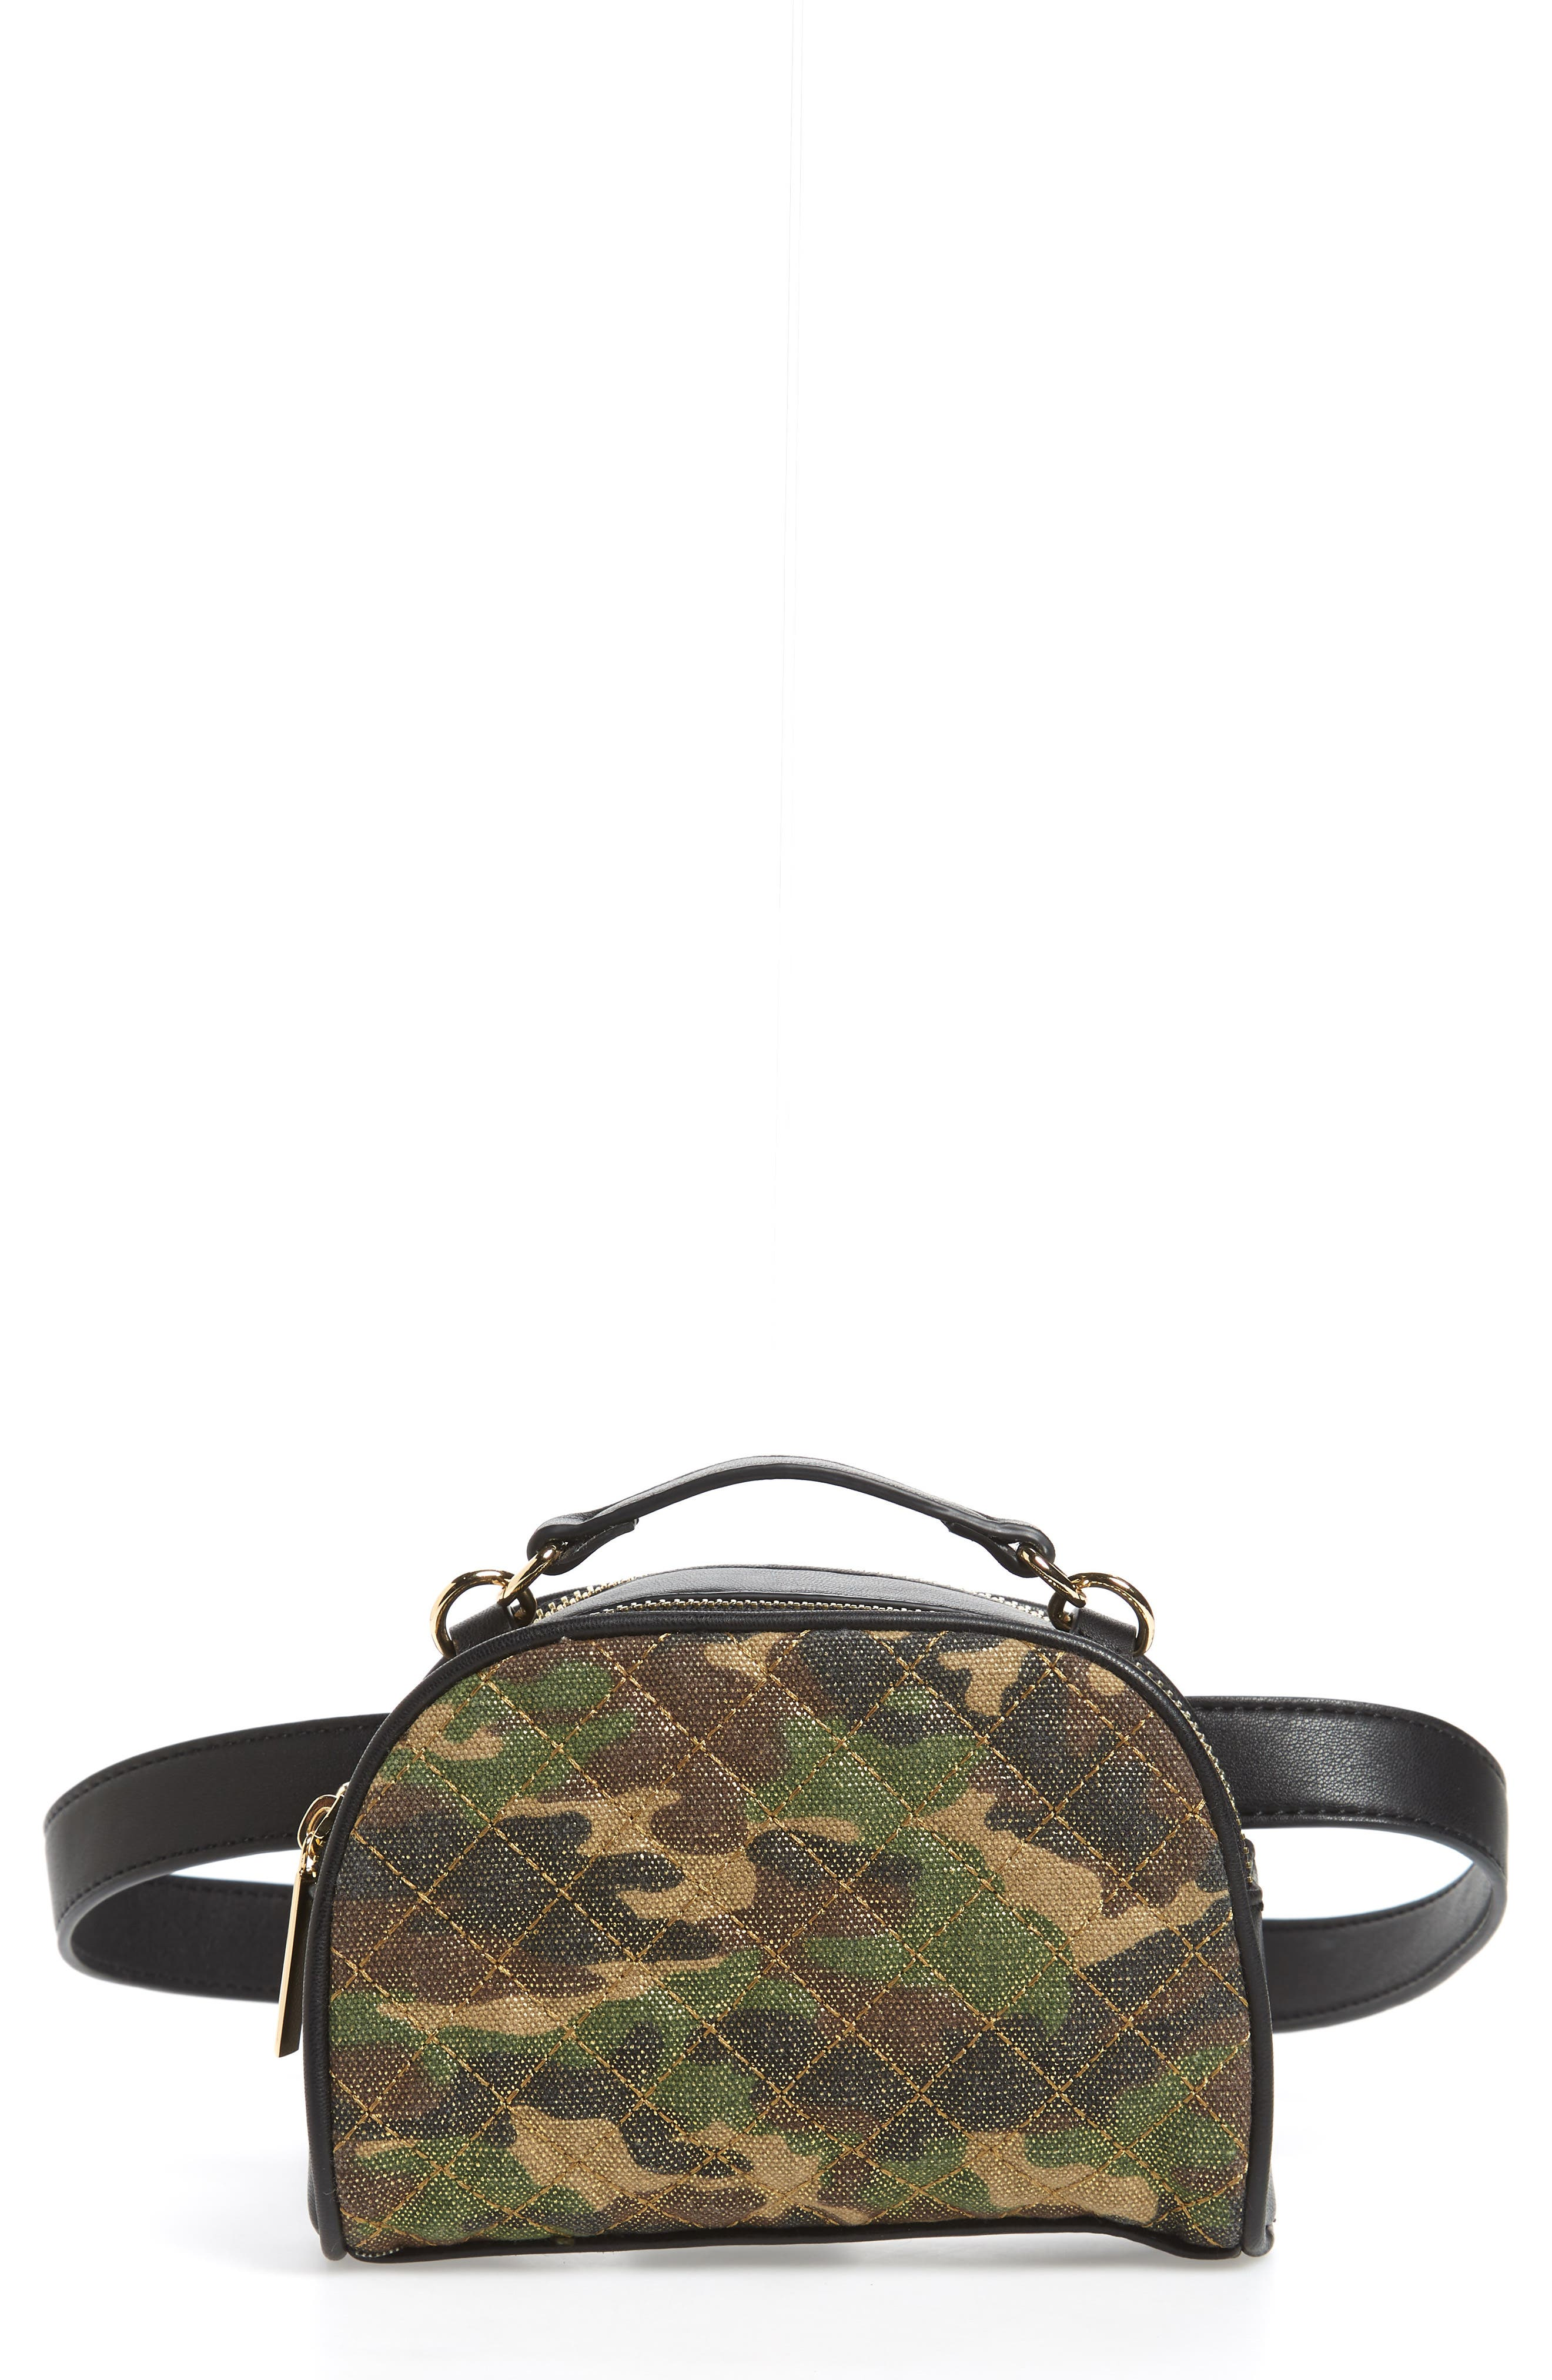 Mali + Lili Quilted Camouflage Belt Bag,                             Main thumbnail 1, color,                             Camouflage